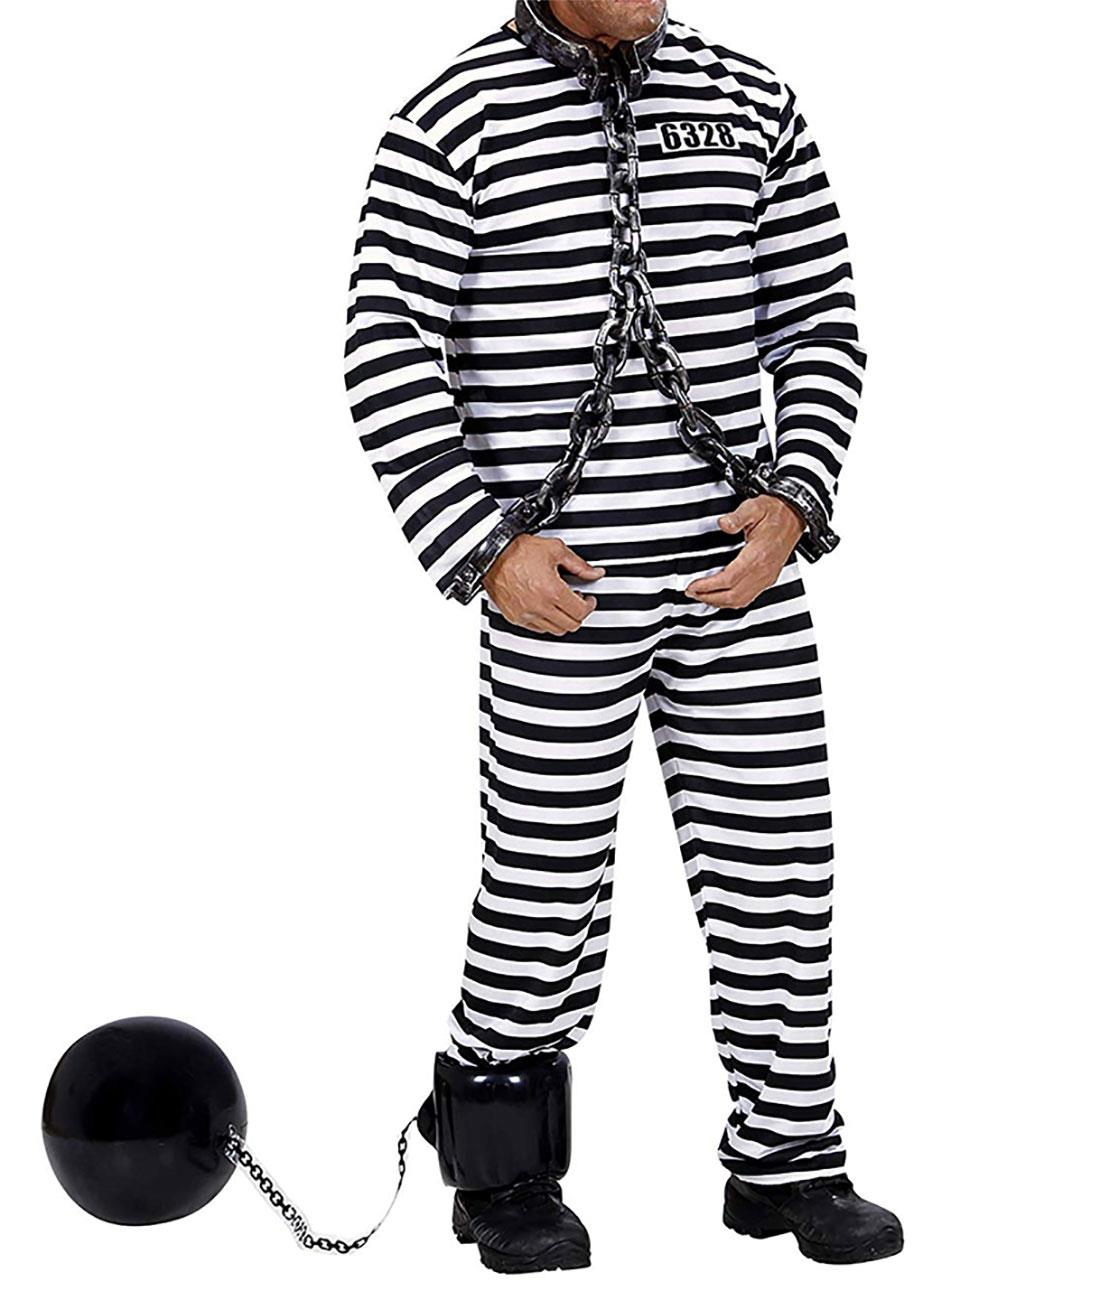 Inflatable Ball 30cm and Chain 60cm Kids Prisoner Convict Stag Fancy Dress Party